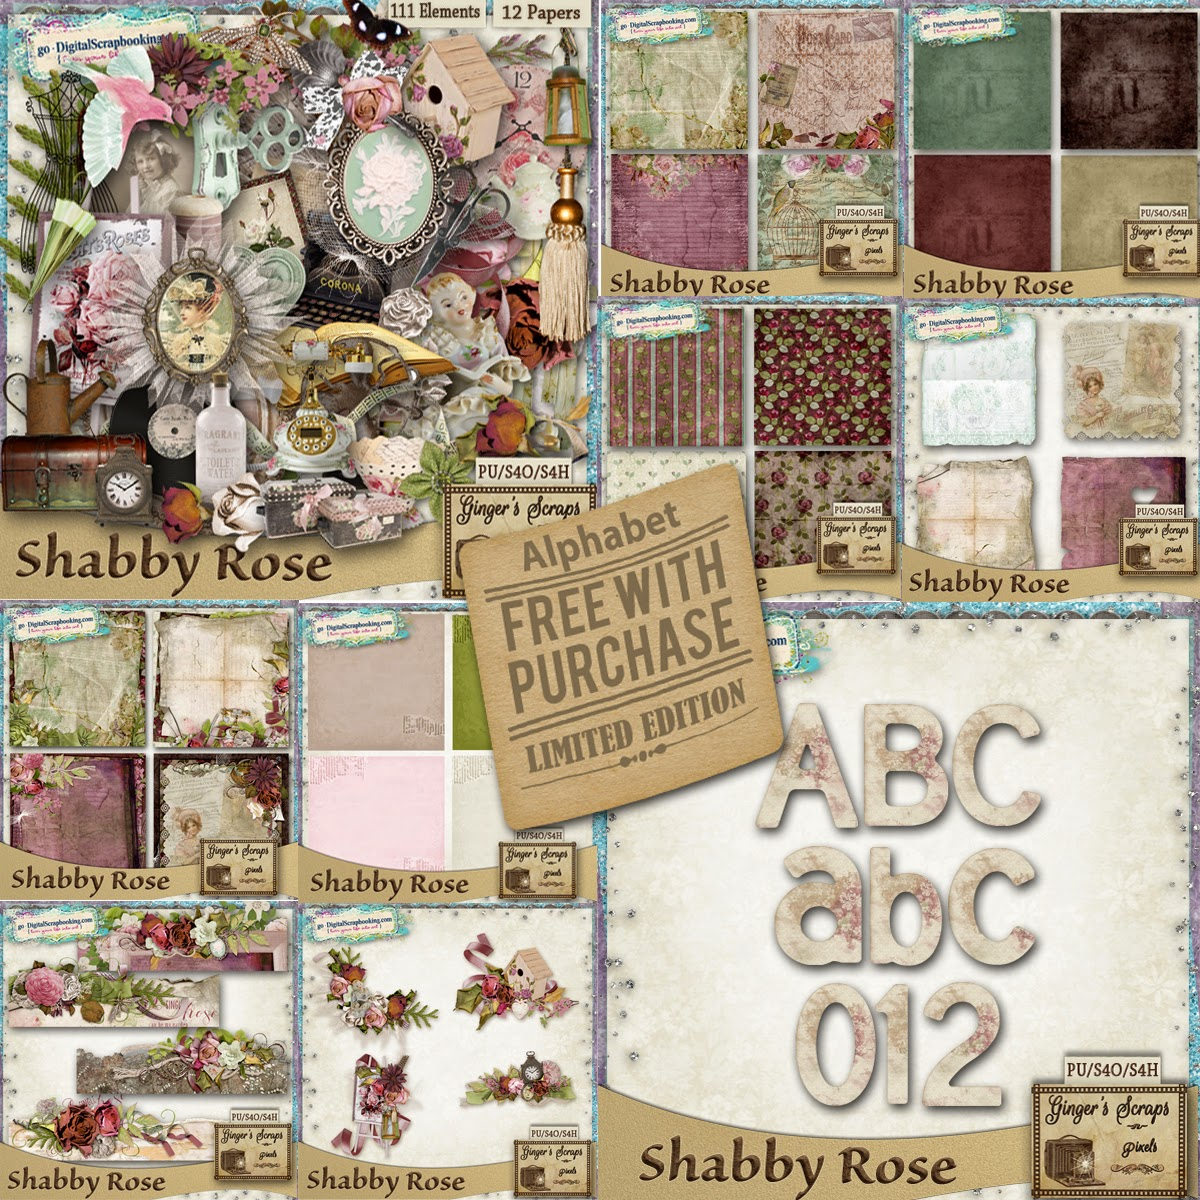 http://www.godigitalscrapbooking.com/shop/index.php?main_page=product_dnld_info&cPath=29_272&products_id=24230